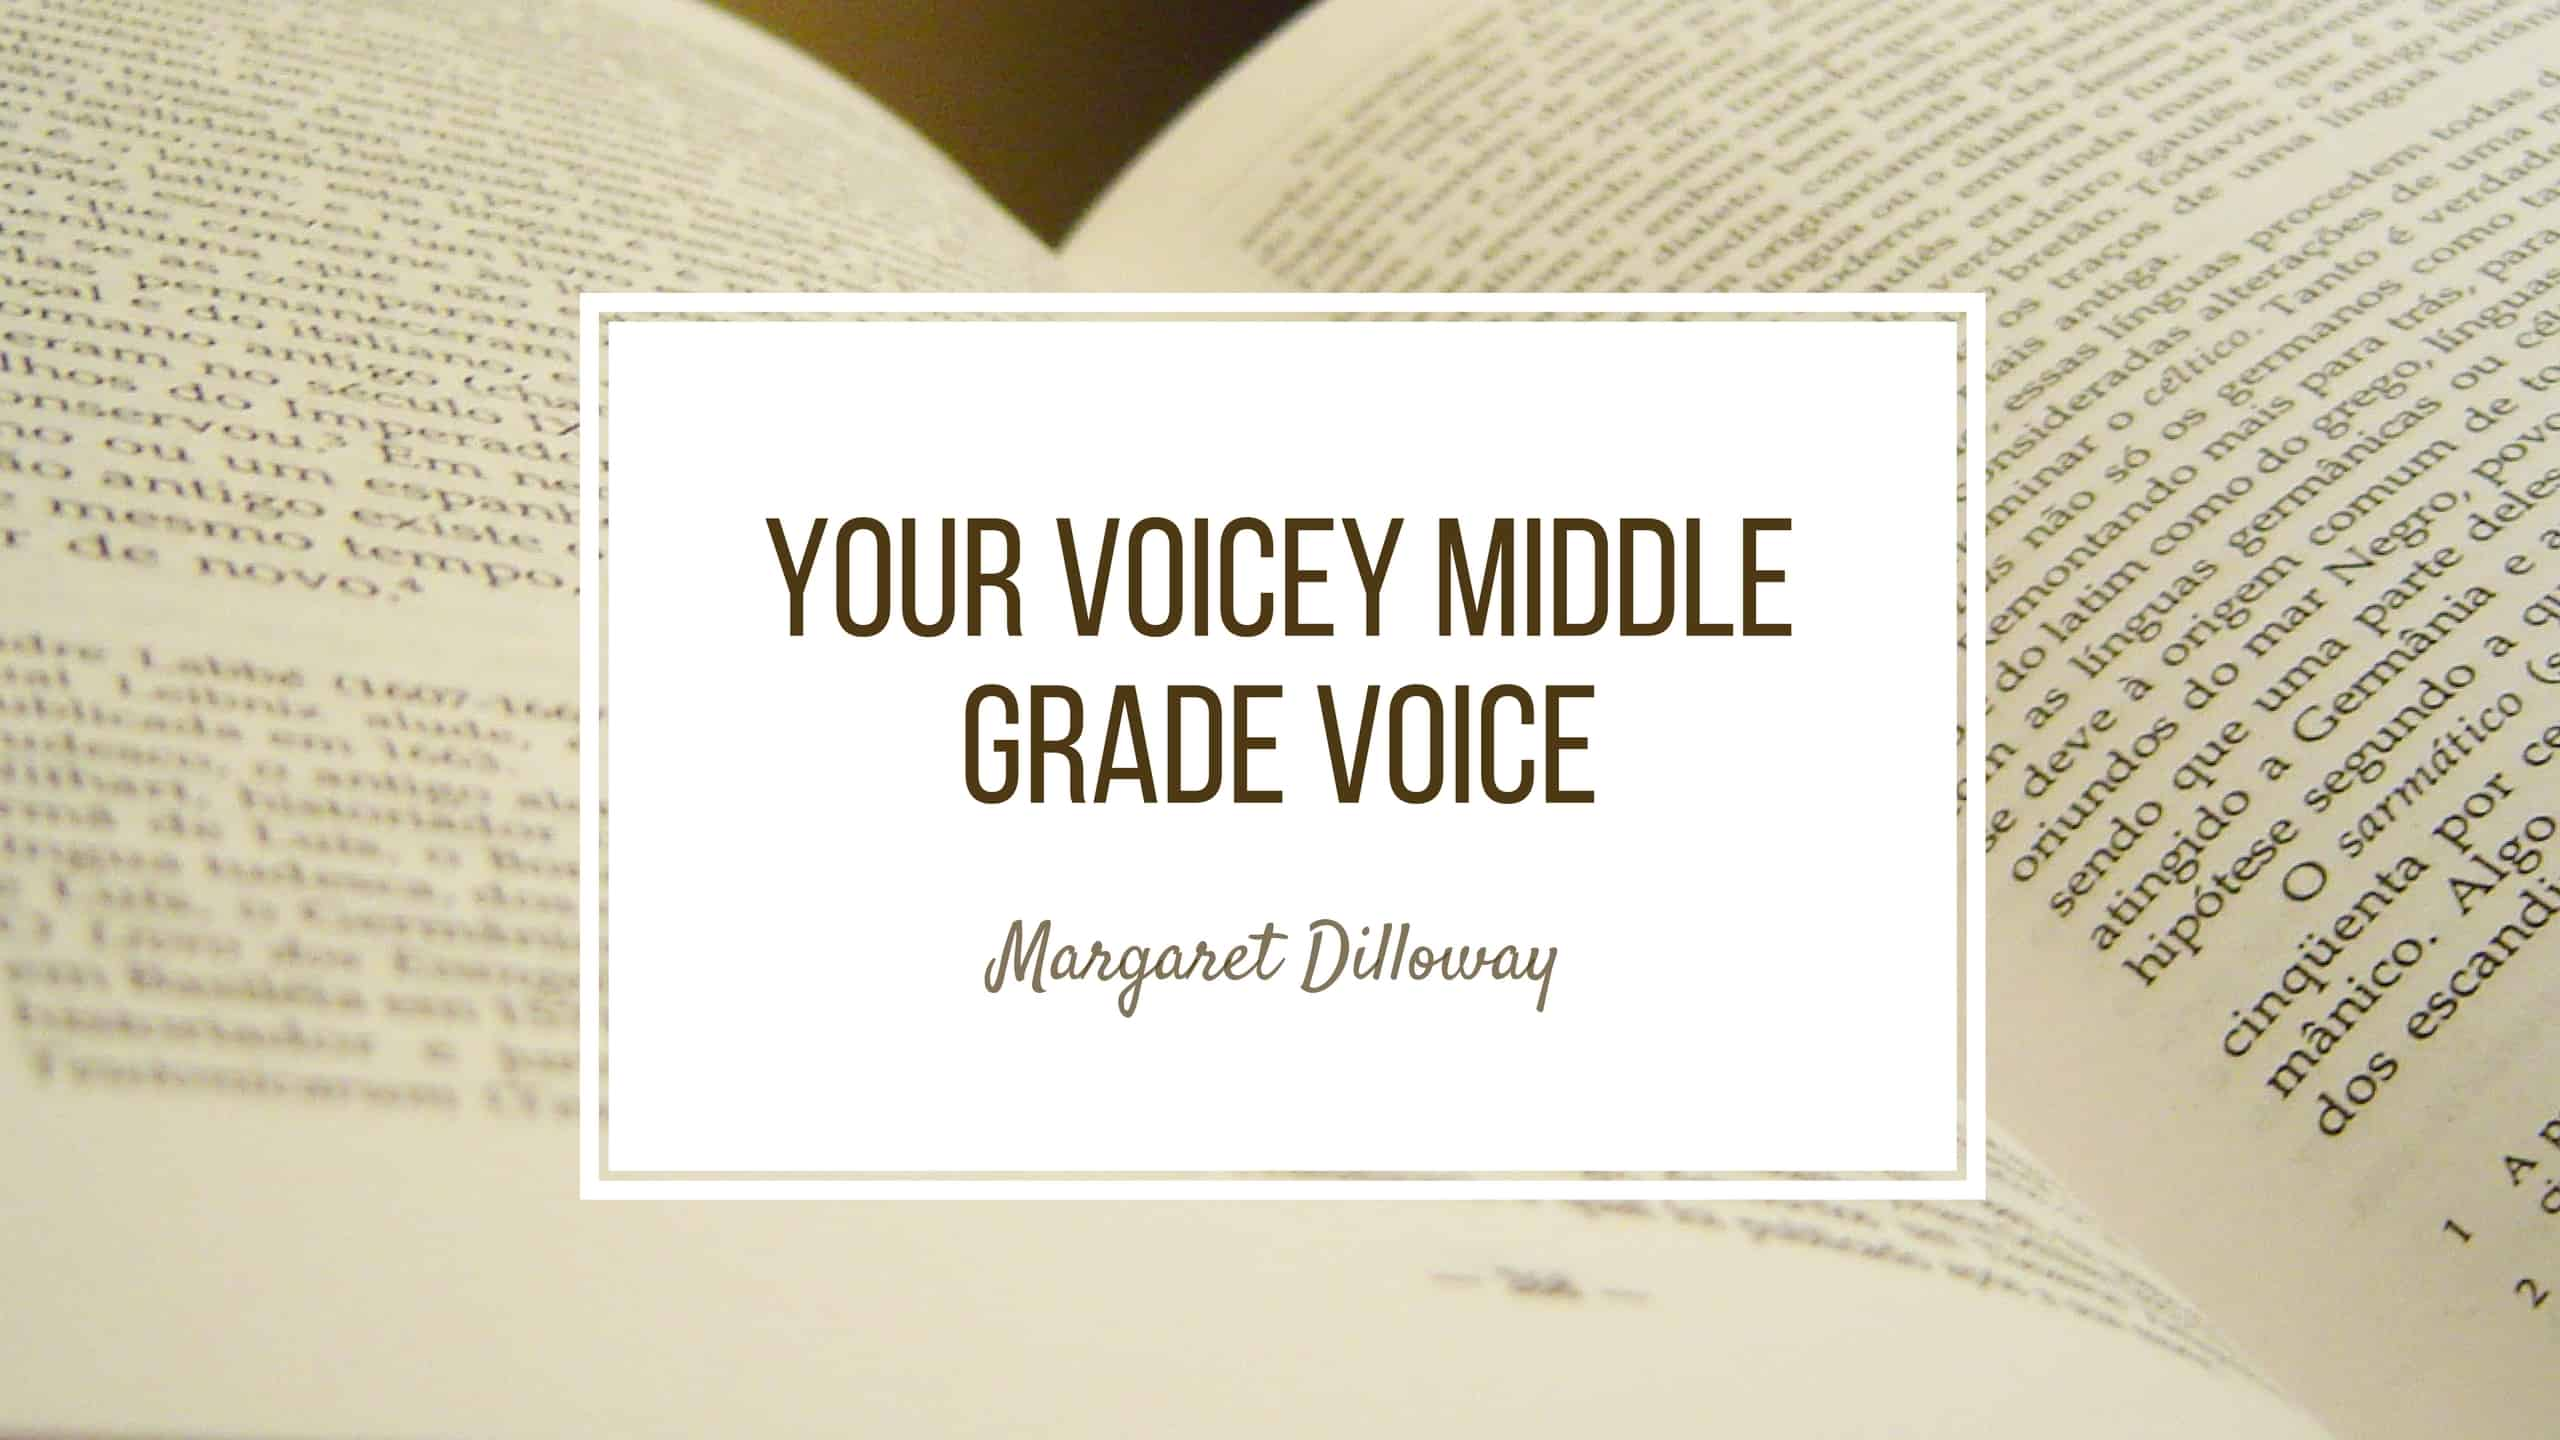 Your Voicey Middle Grade Voice